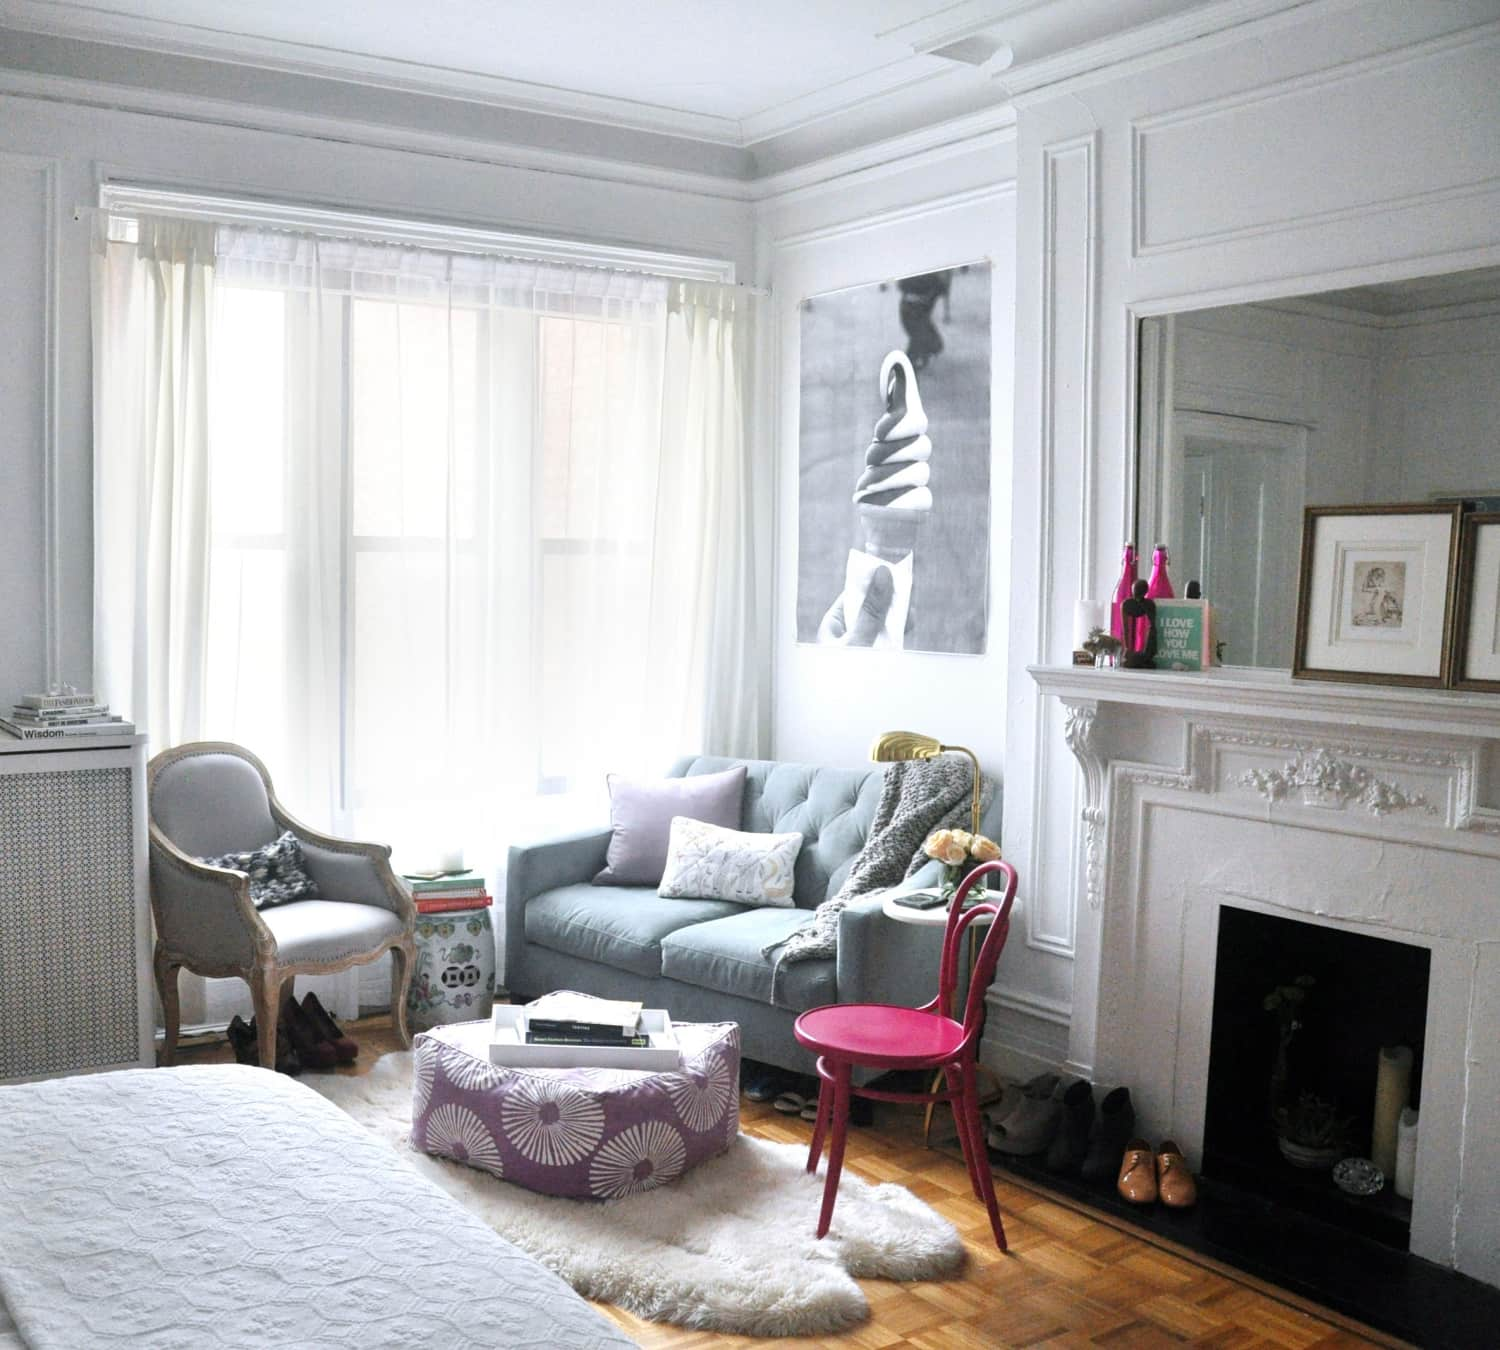 2 Bedroom Apartment In New York: 5 New Yorkers Who Made The Most Of Seriously Small